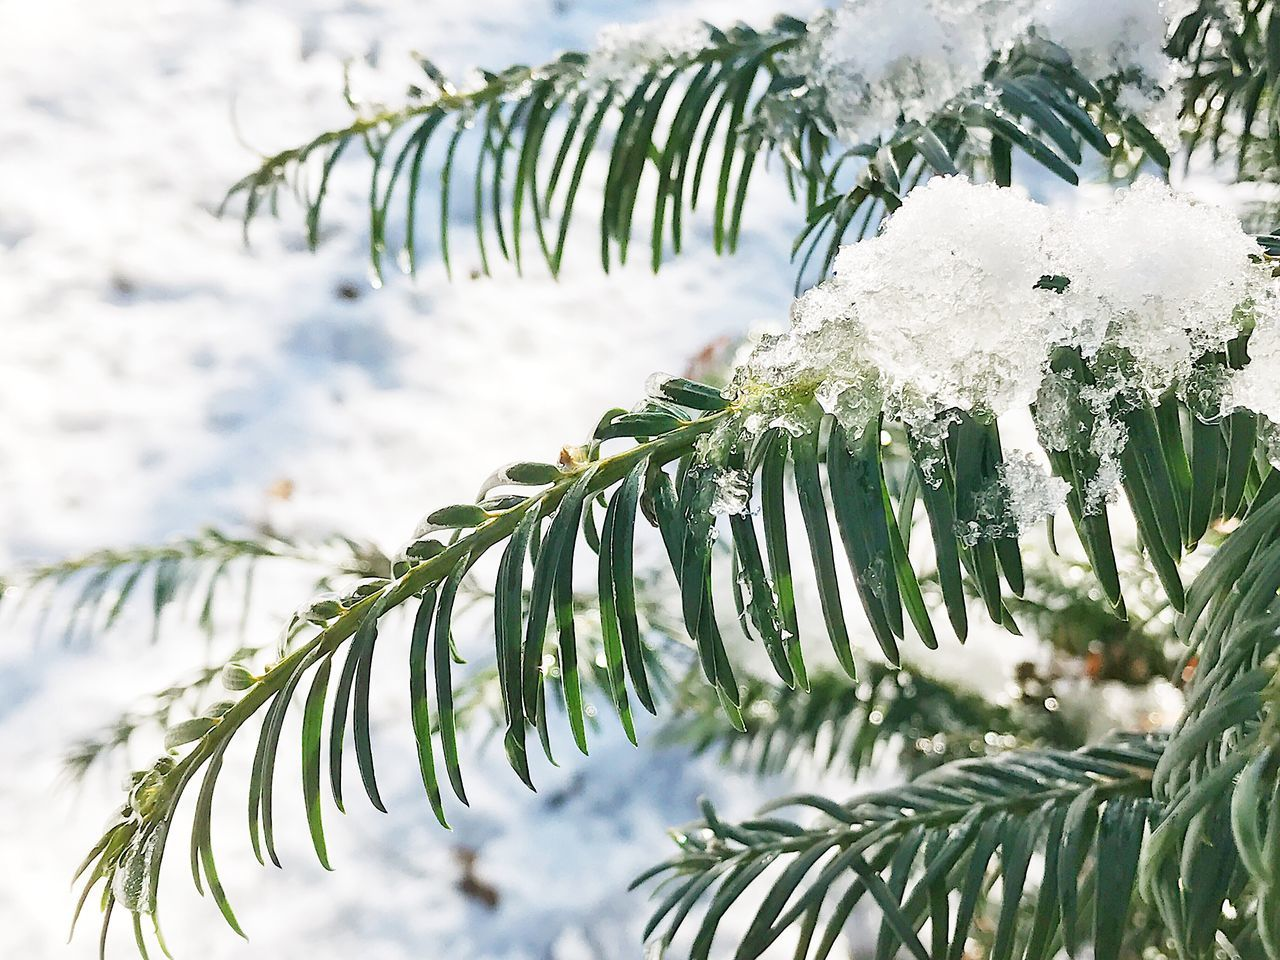 Winter Nature Snow Tree Cold Temperature Weather Beauty In Nature White Color Branch Focus On Foreground Growth Close-up No People Outdoors Leaf Twig Day Needle - Plant Part Ice